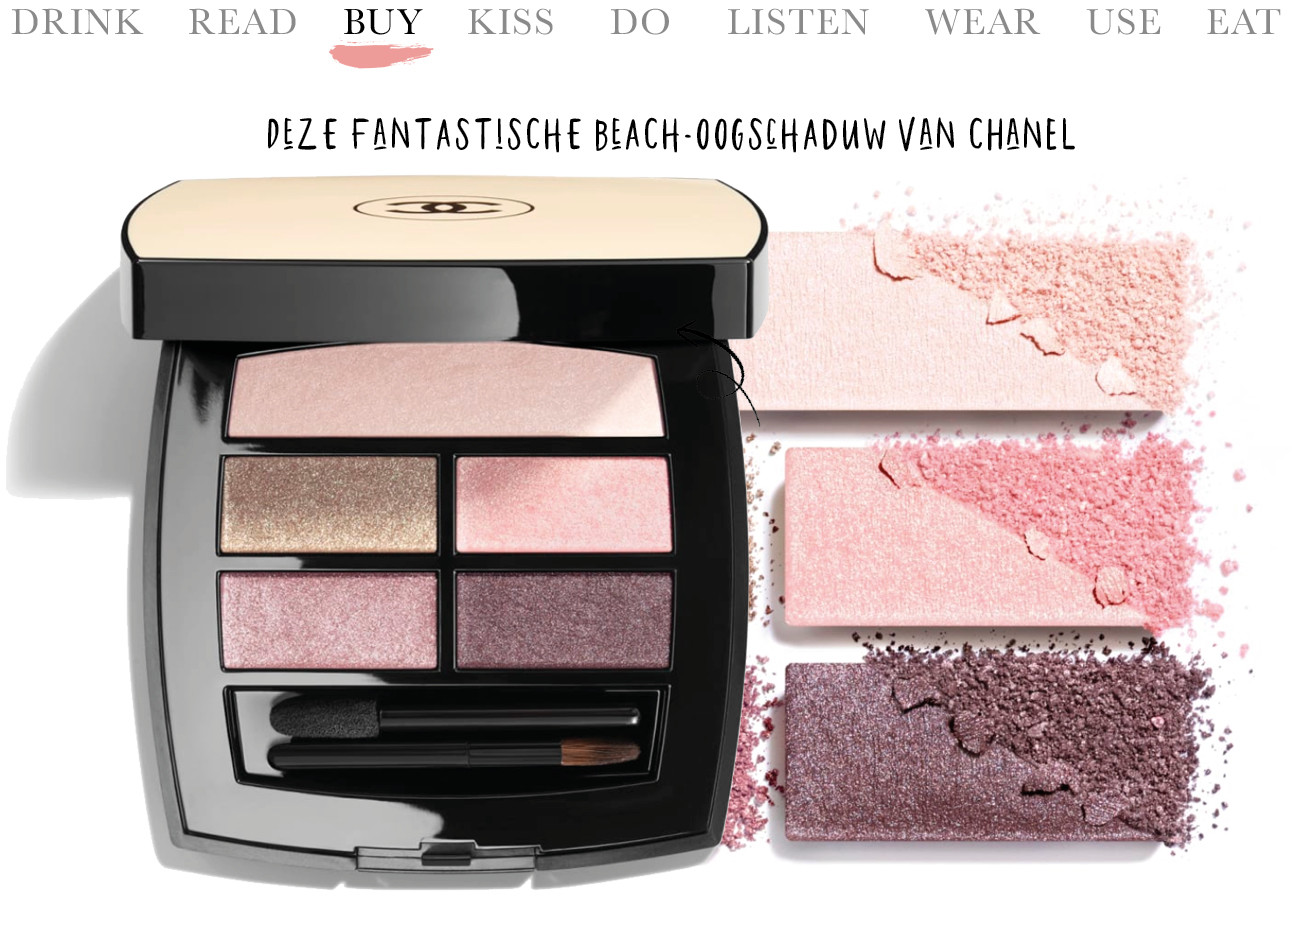 Today we…buy Deze fantastische beach-oogschaduw van CHANEL